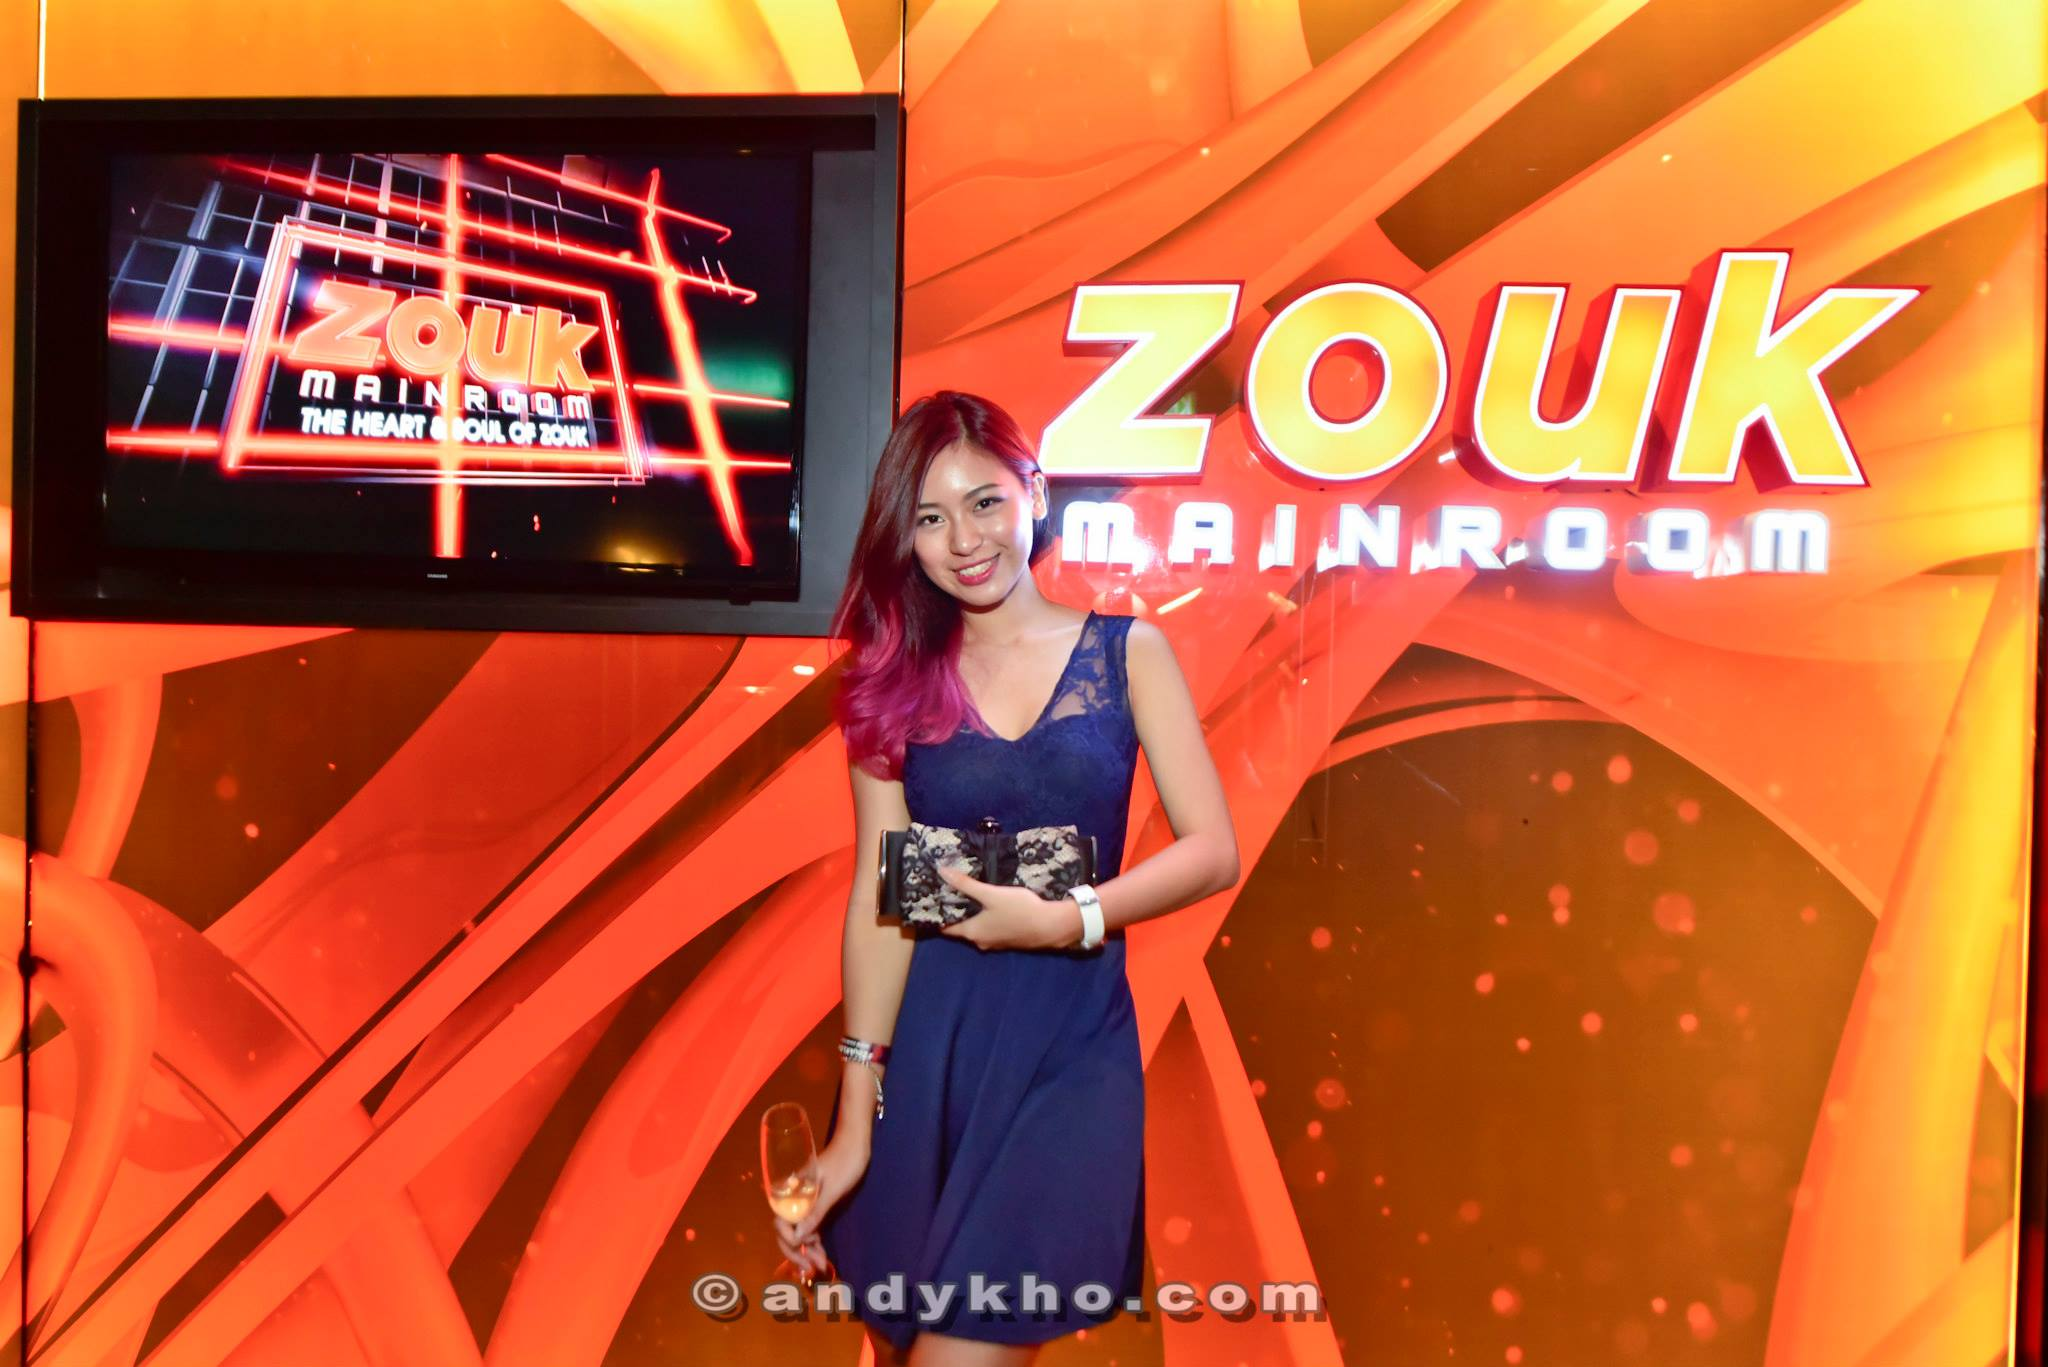 Launch of the new zouk club kl for Balcony deck zouk